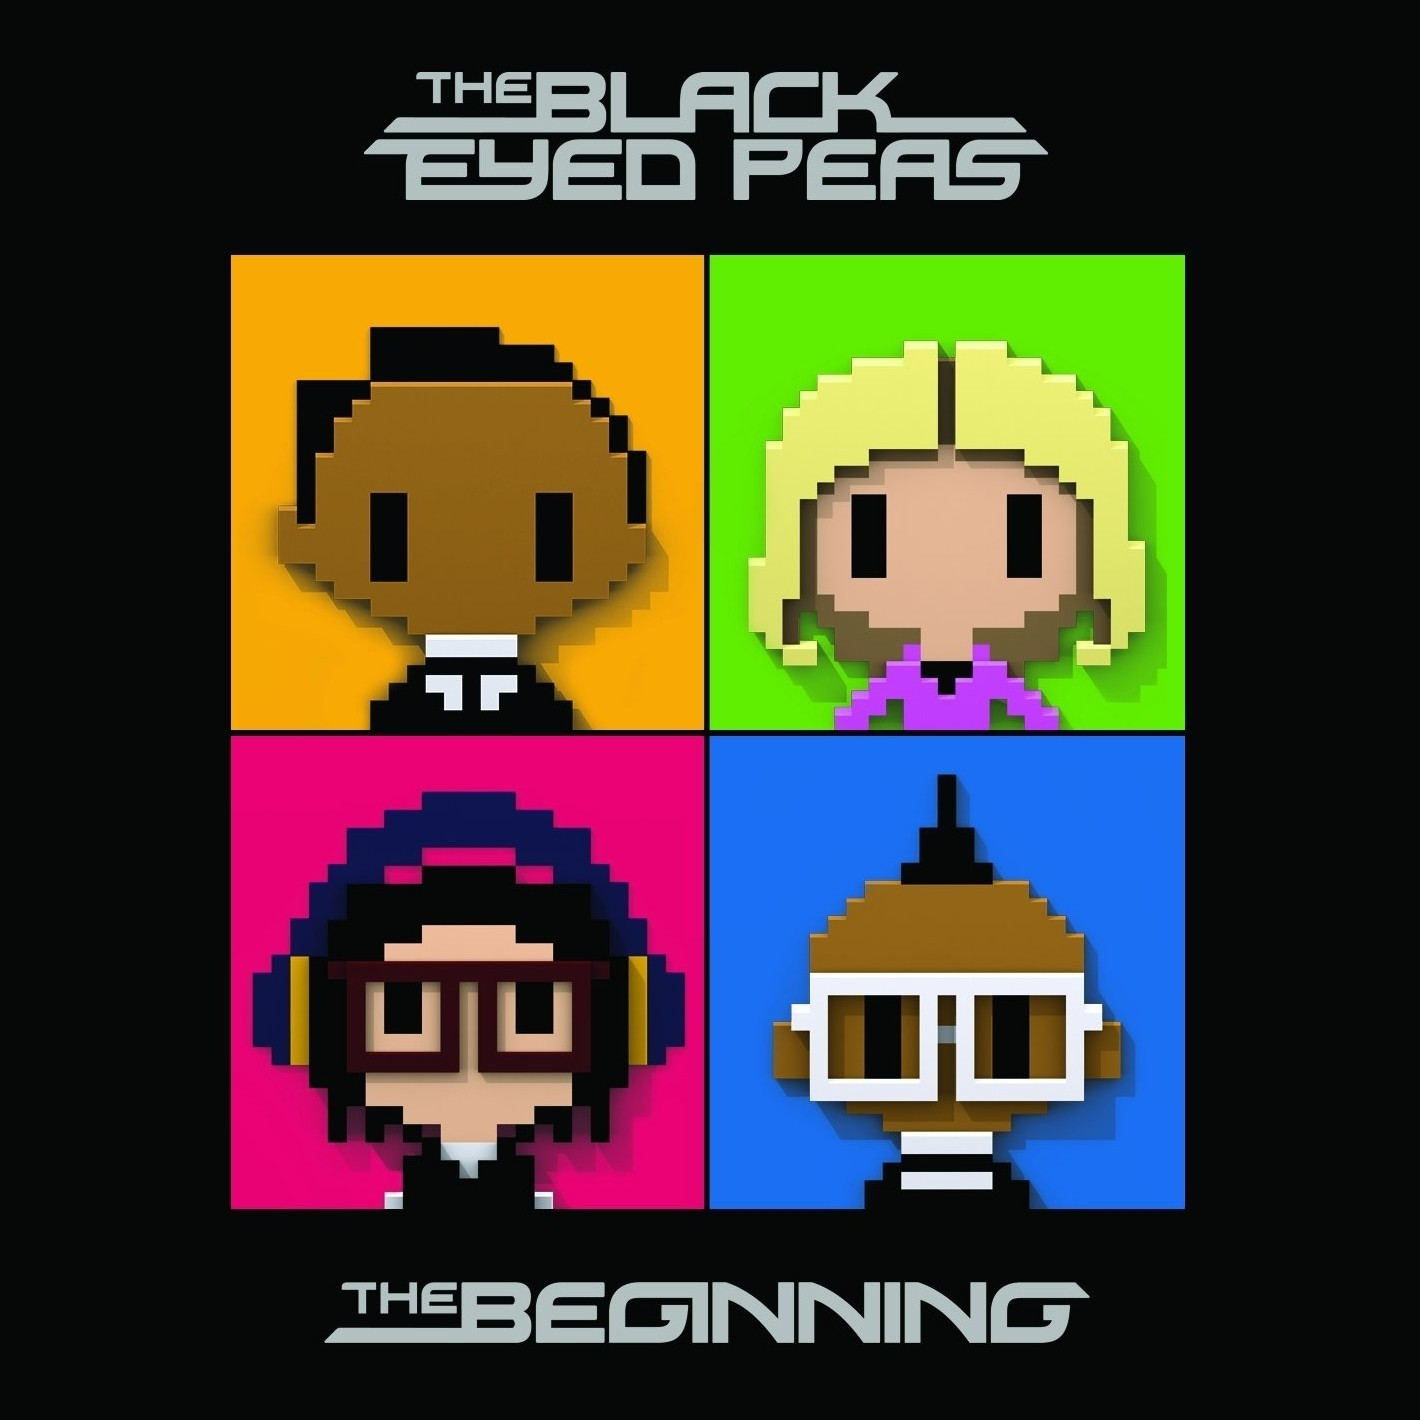 Black Eyed Peas – The Beginning (Deluxe Edition Download)